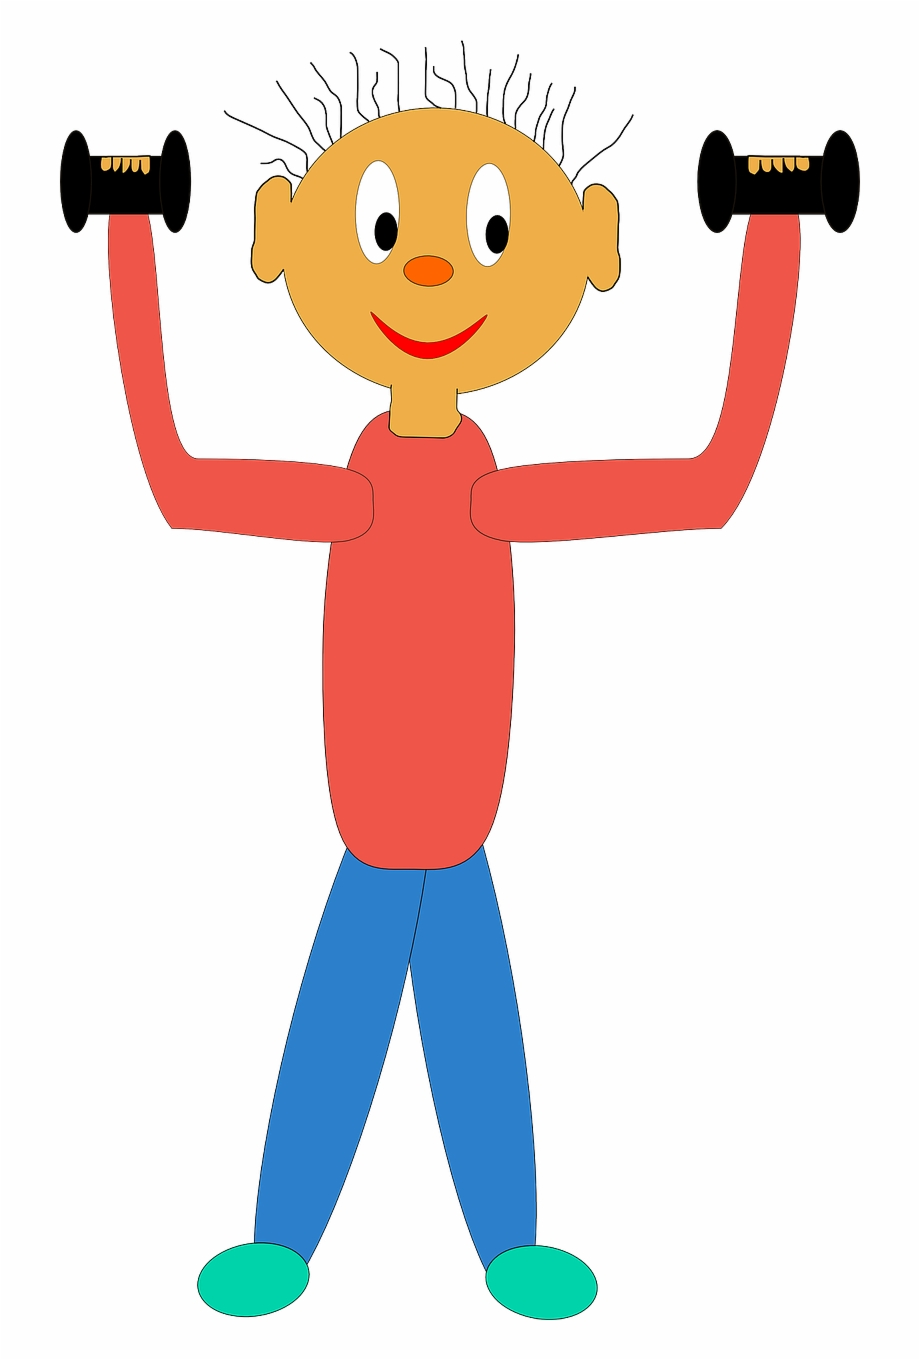 graphic royalty free download Dumbbells clipart kid. Exercising fitness png image.